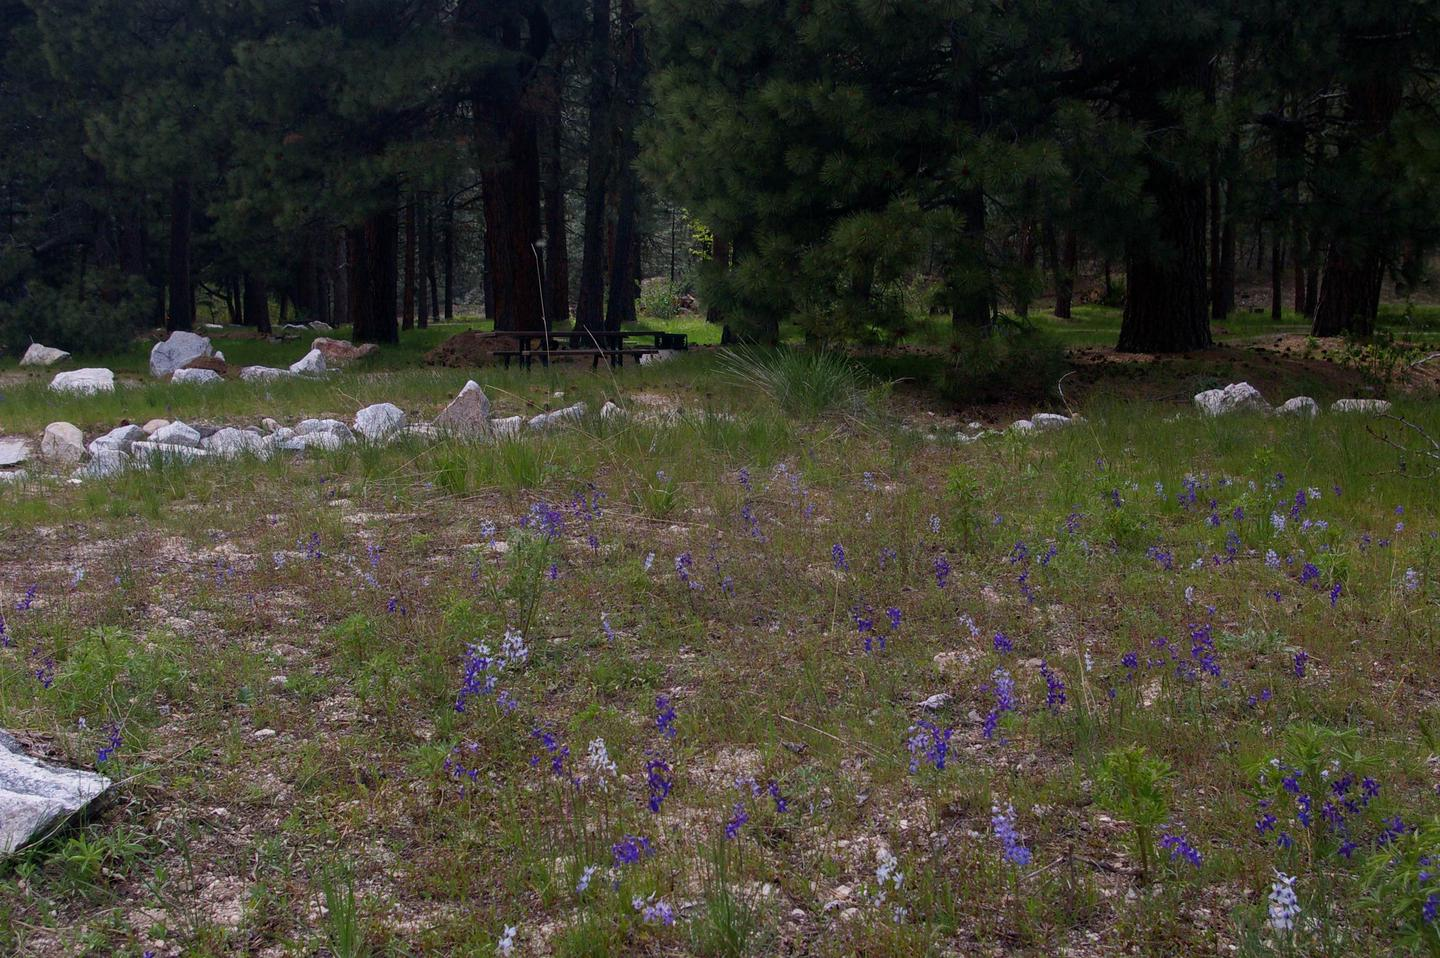 Grassy areas lead you to sites surrounded by pine trees with picnic tables, BBQ stand and tents pads.Elks Flat Campground